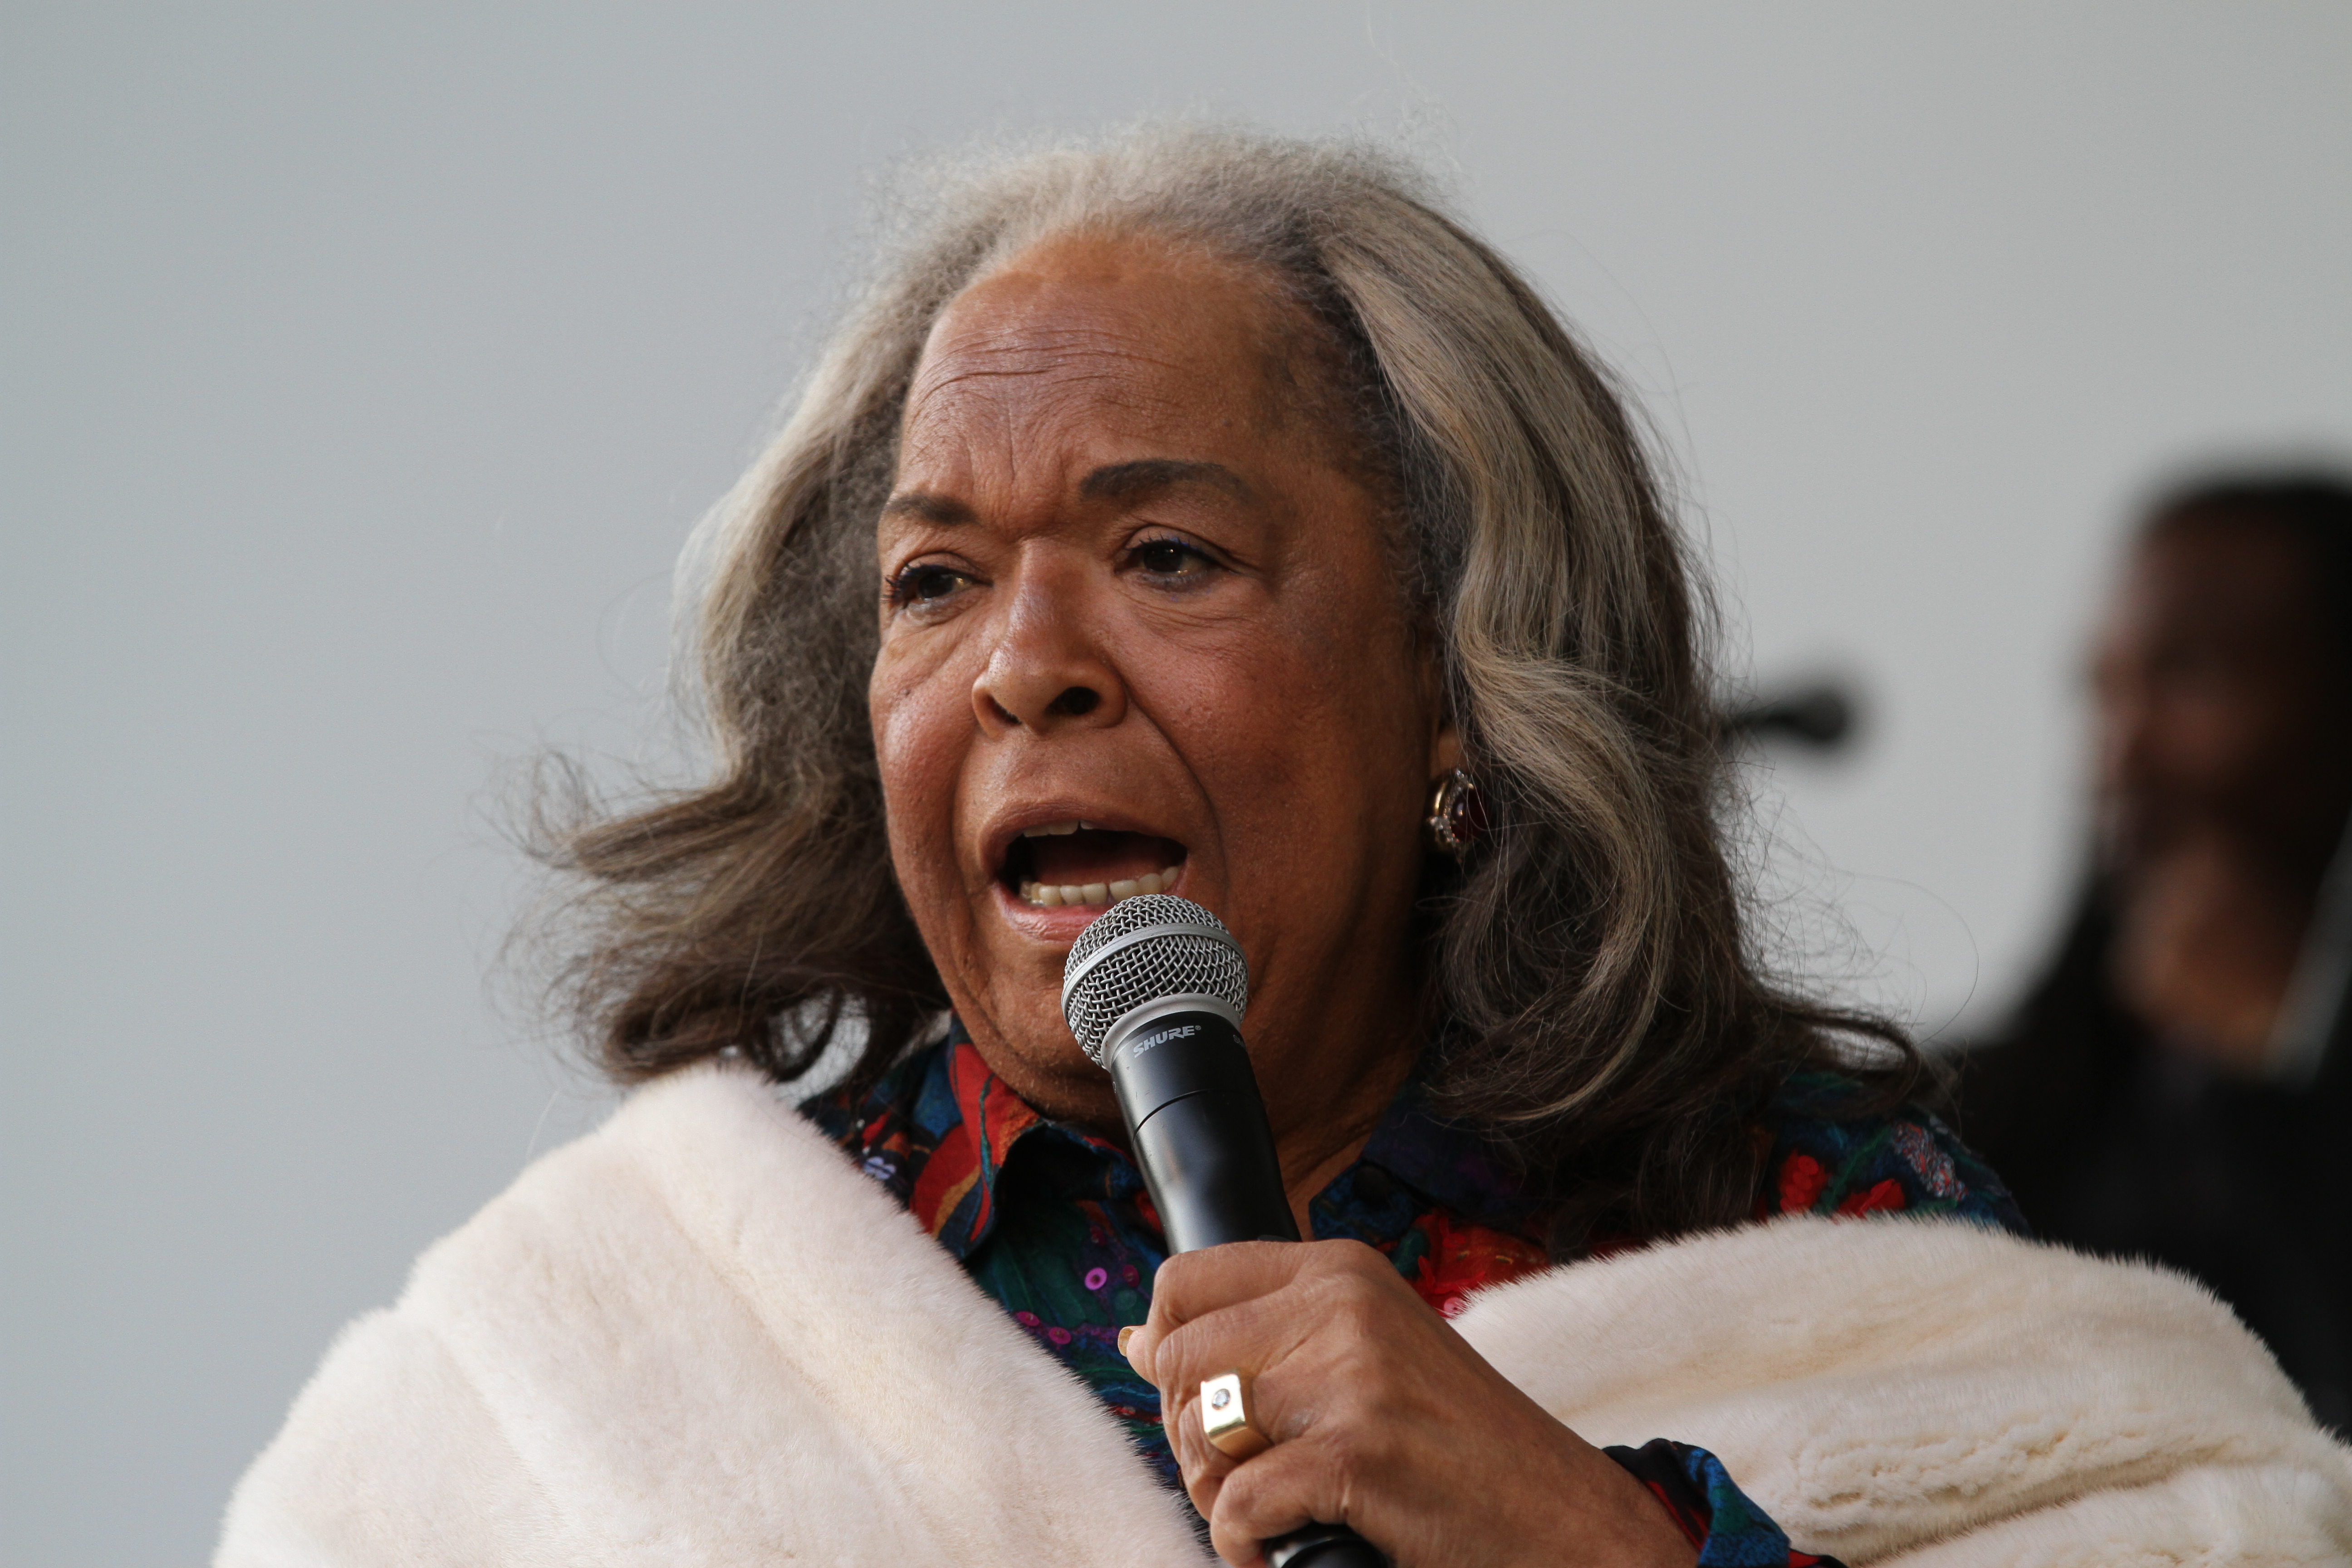 Della Reese at Make a Joyful Noise: A Tribute to Mahalia Jackson at the Central Park SummerStage on Jun. 22, 2013. (Derrick Salters/WENN.com)<p></p>